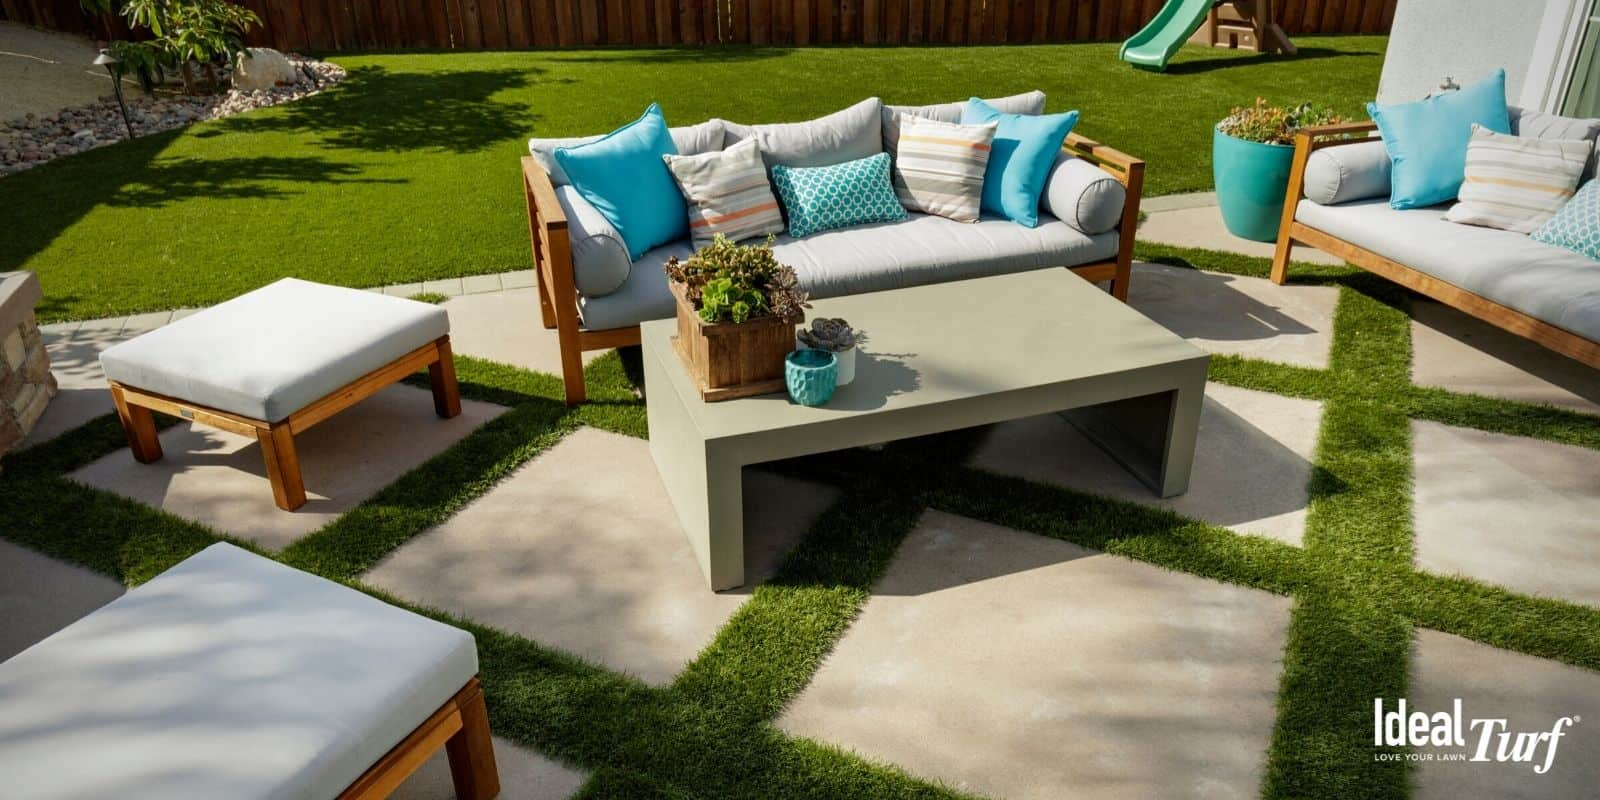 Residential backyard patio area with artificial grass installed between pavers